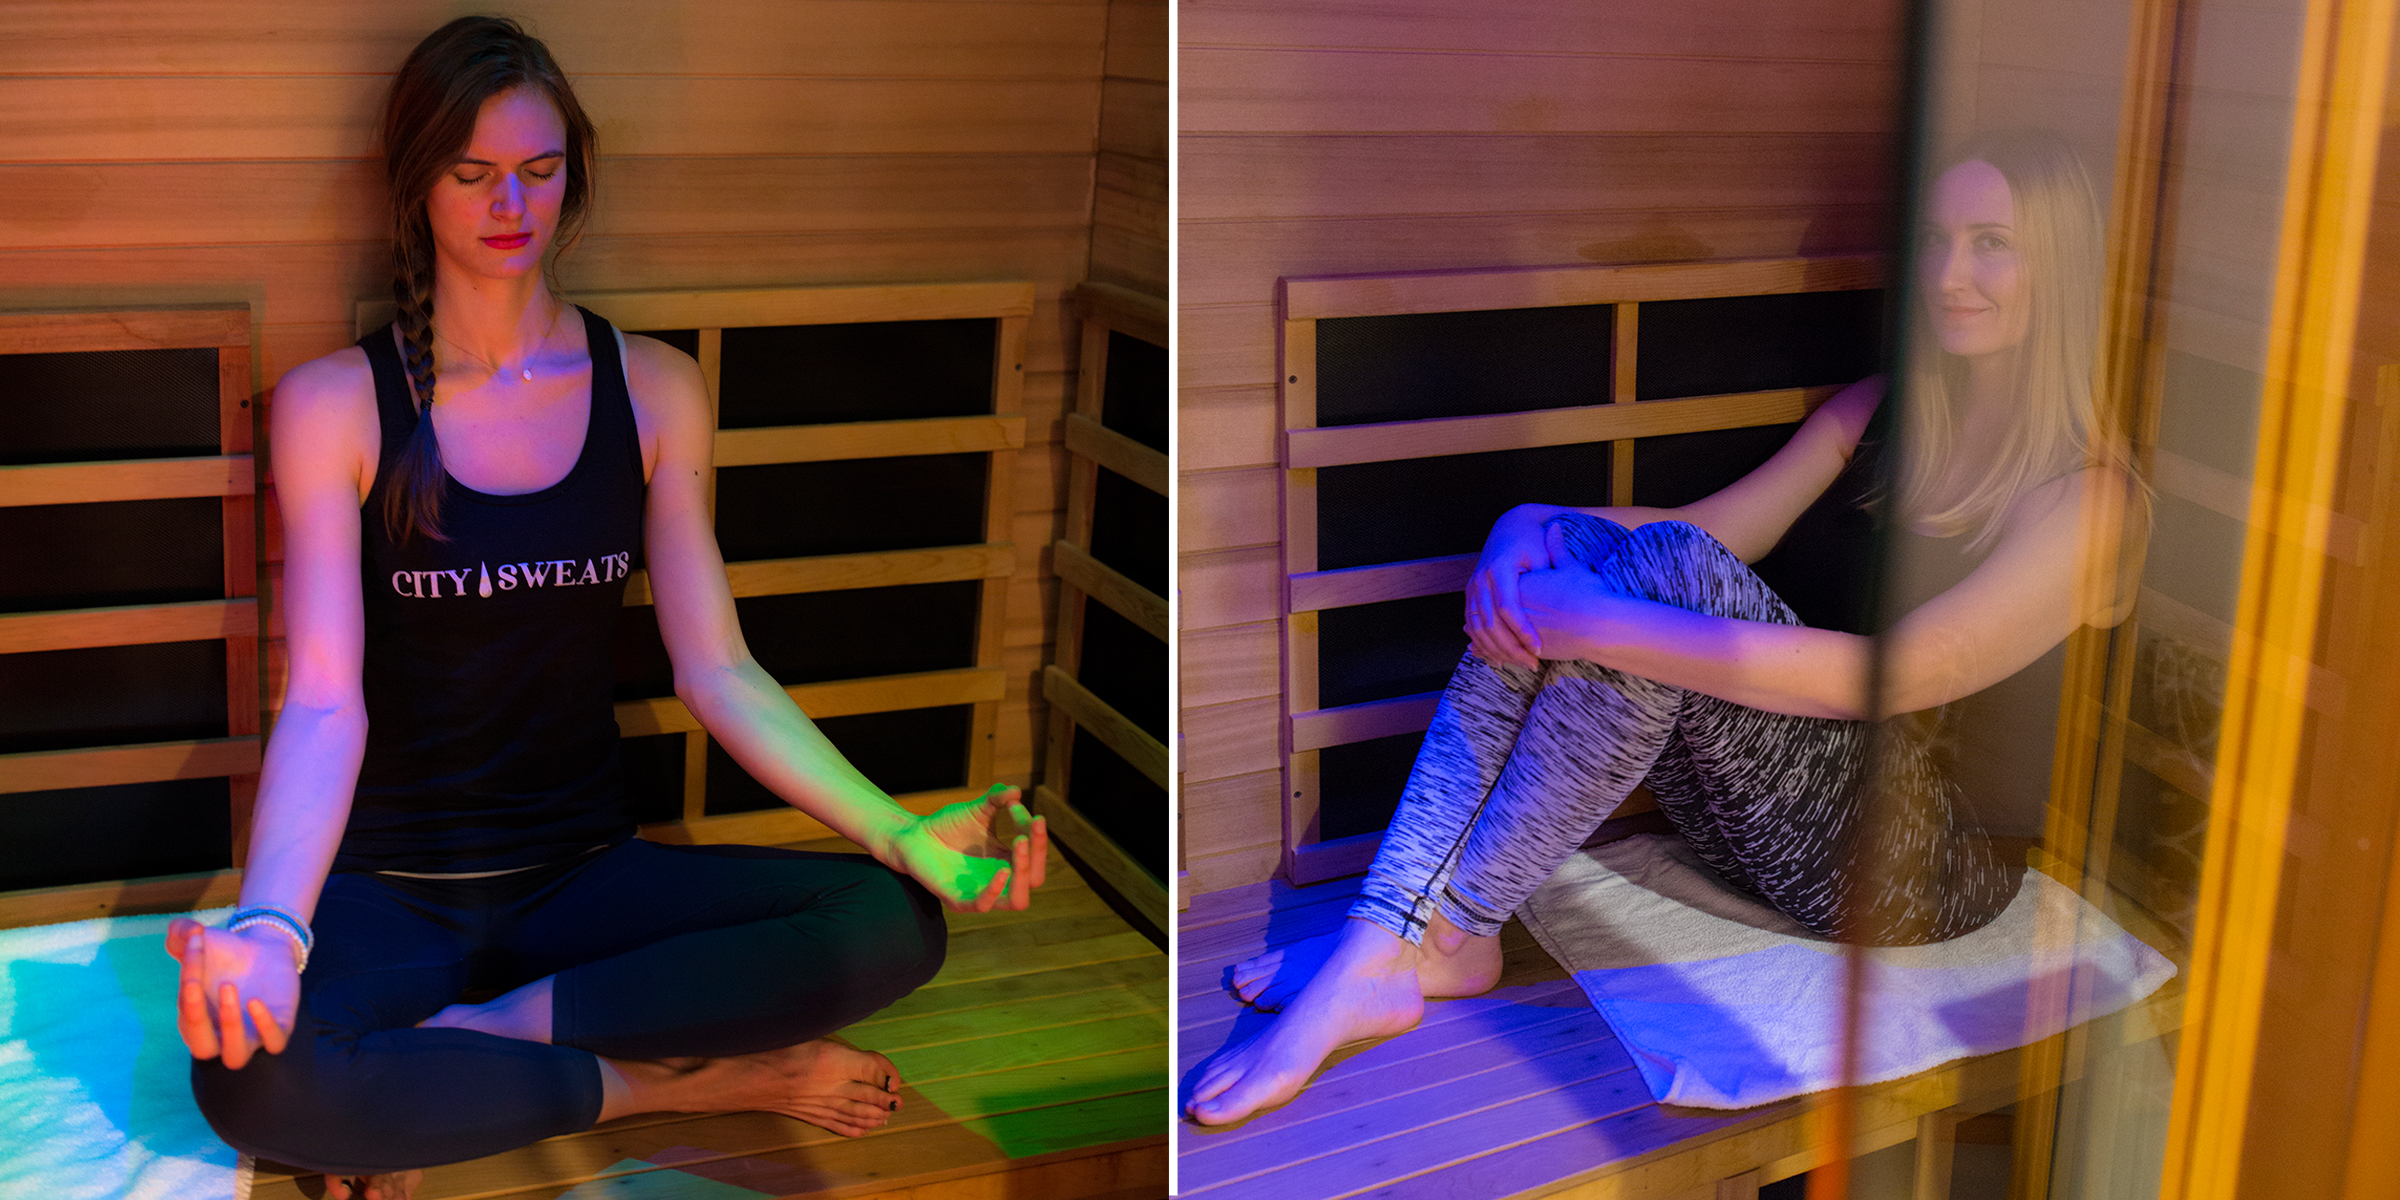 The session lasts for 45 minutes  We will take you back to the private treatment room with water. Make sure to drink plenty of water, before, during and after your sauna. The infrared sauna has the added option of color therapy, be sure to ask your hostess for details. There is a shower available to use afterwards with clean towels provided. When you're finished with your session, we invite you to spend at least 10 minutes in our relaxation room. .